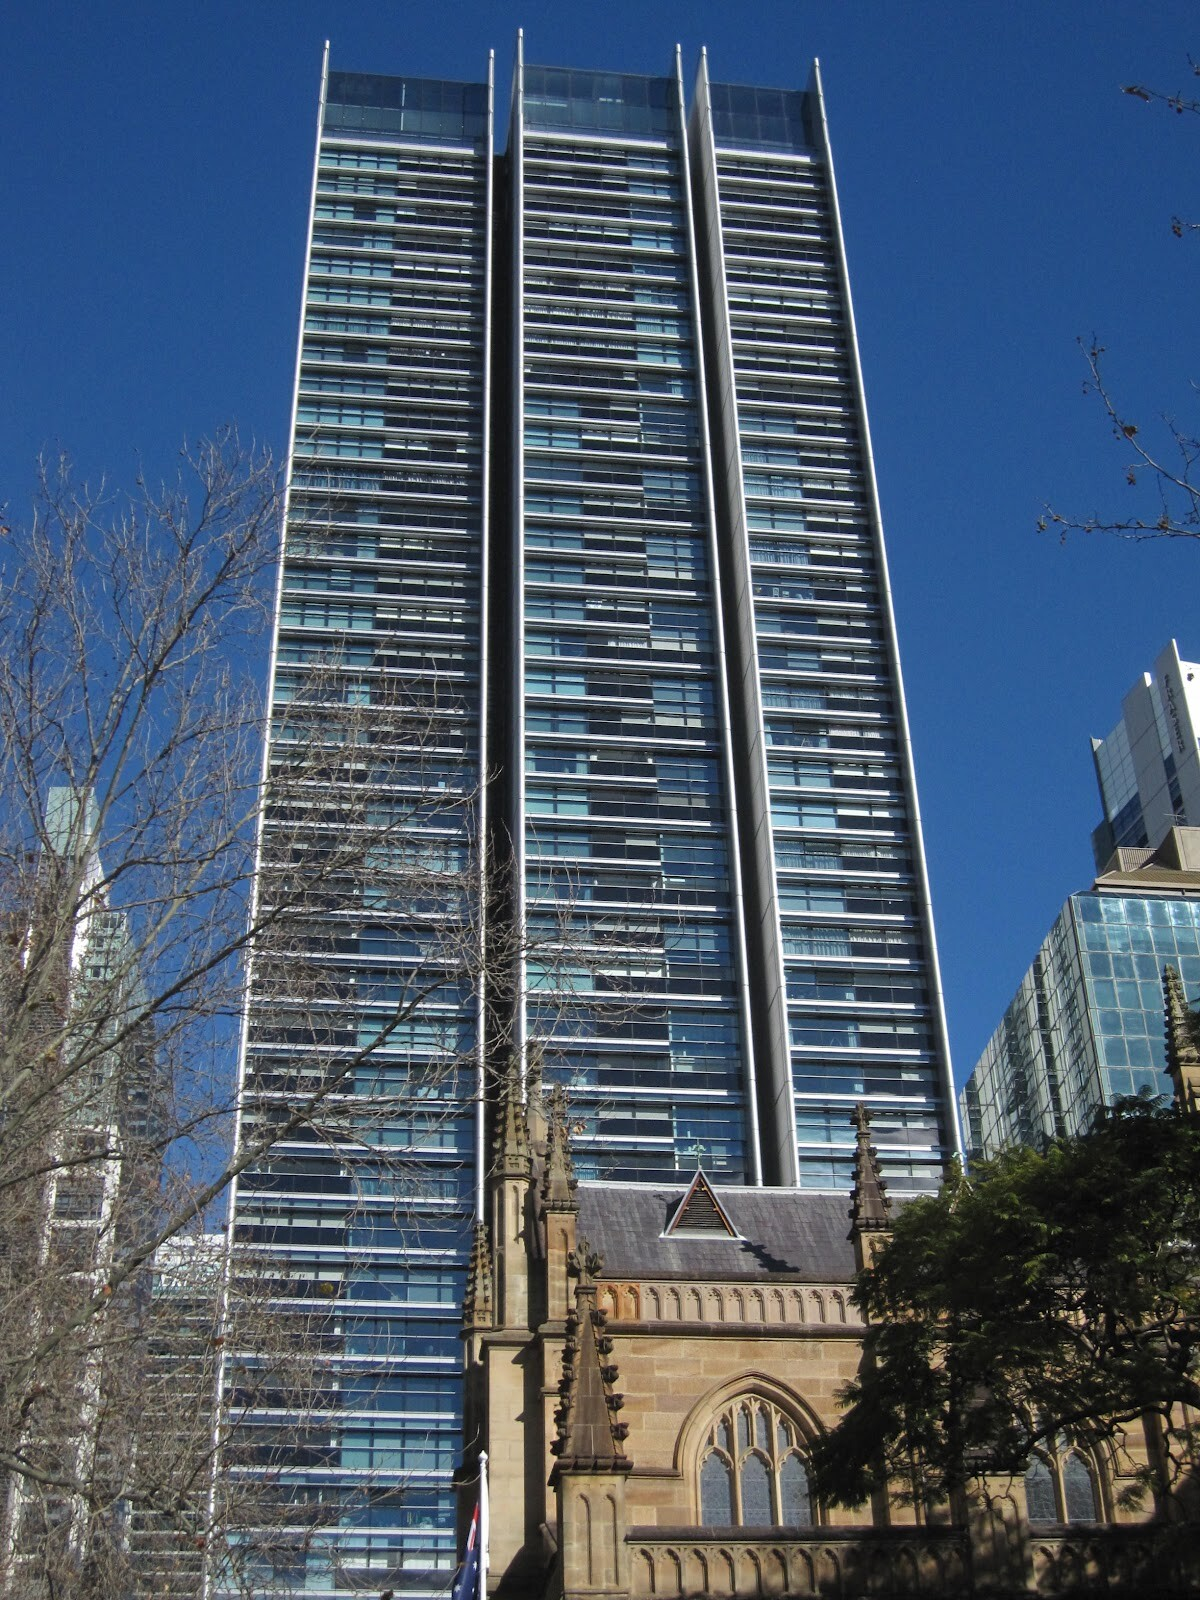 Sky Penthouse In Lumi 232 Re Building Skyscraper Sydney